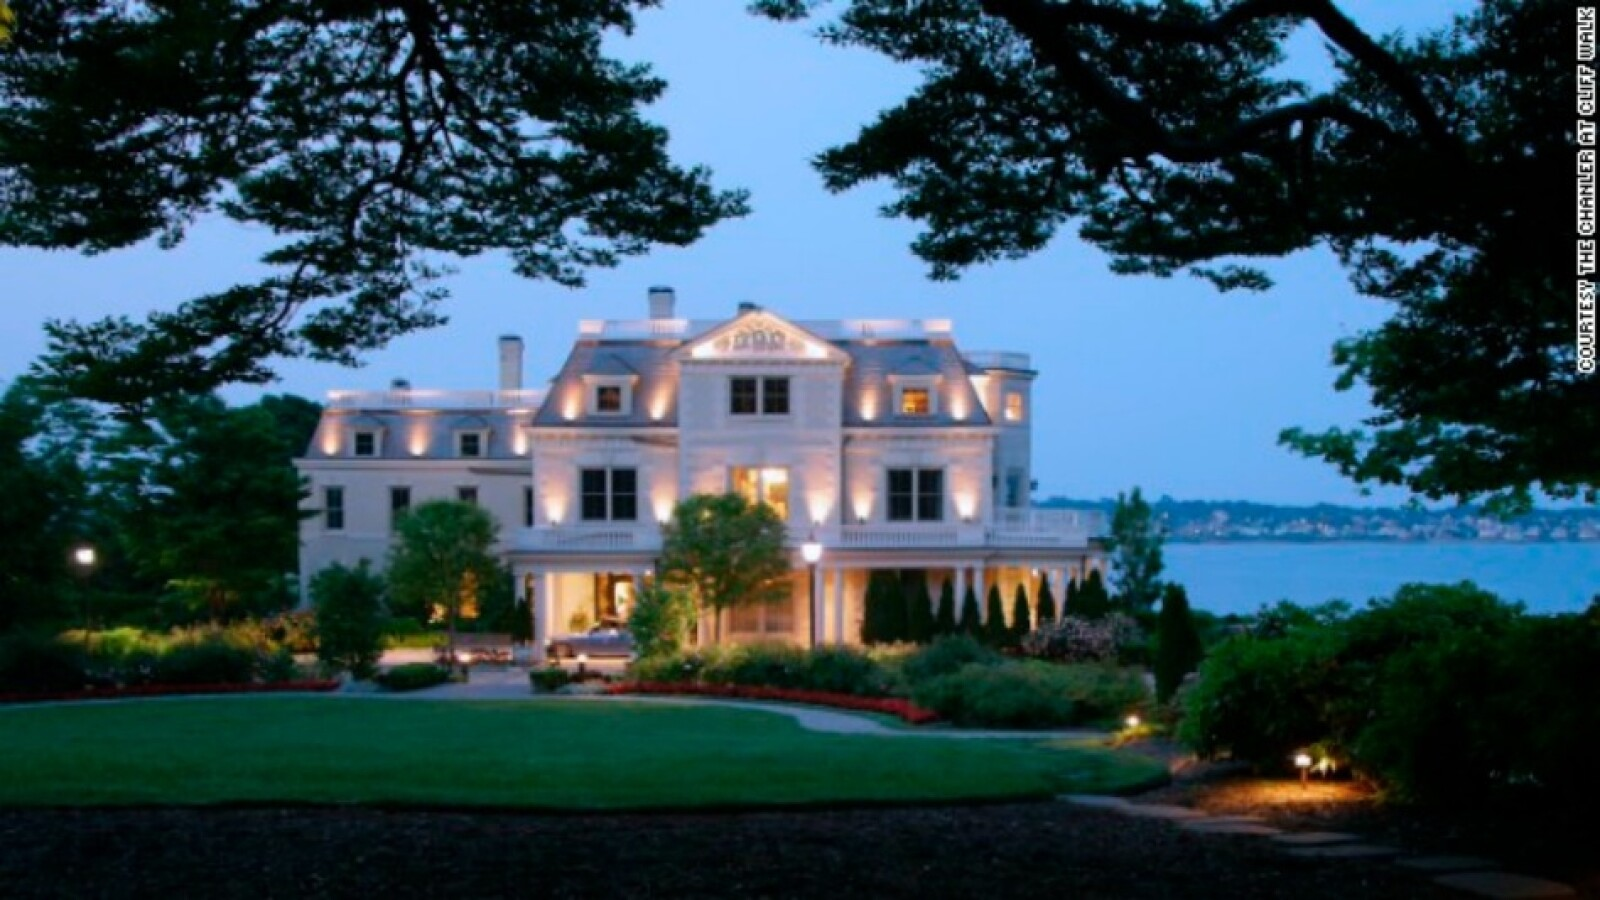 The Chanler at Cliff Walk, Rhode Island